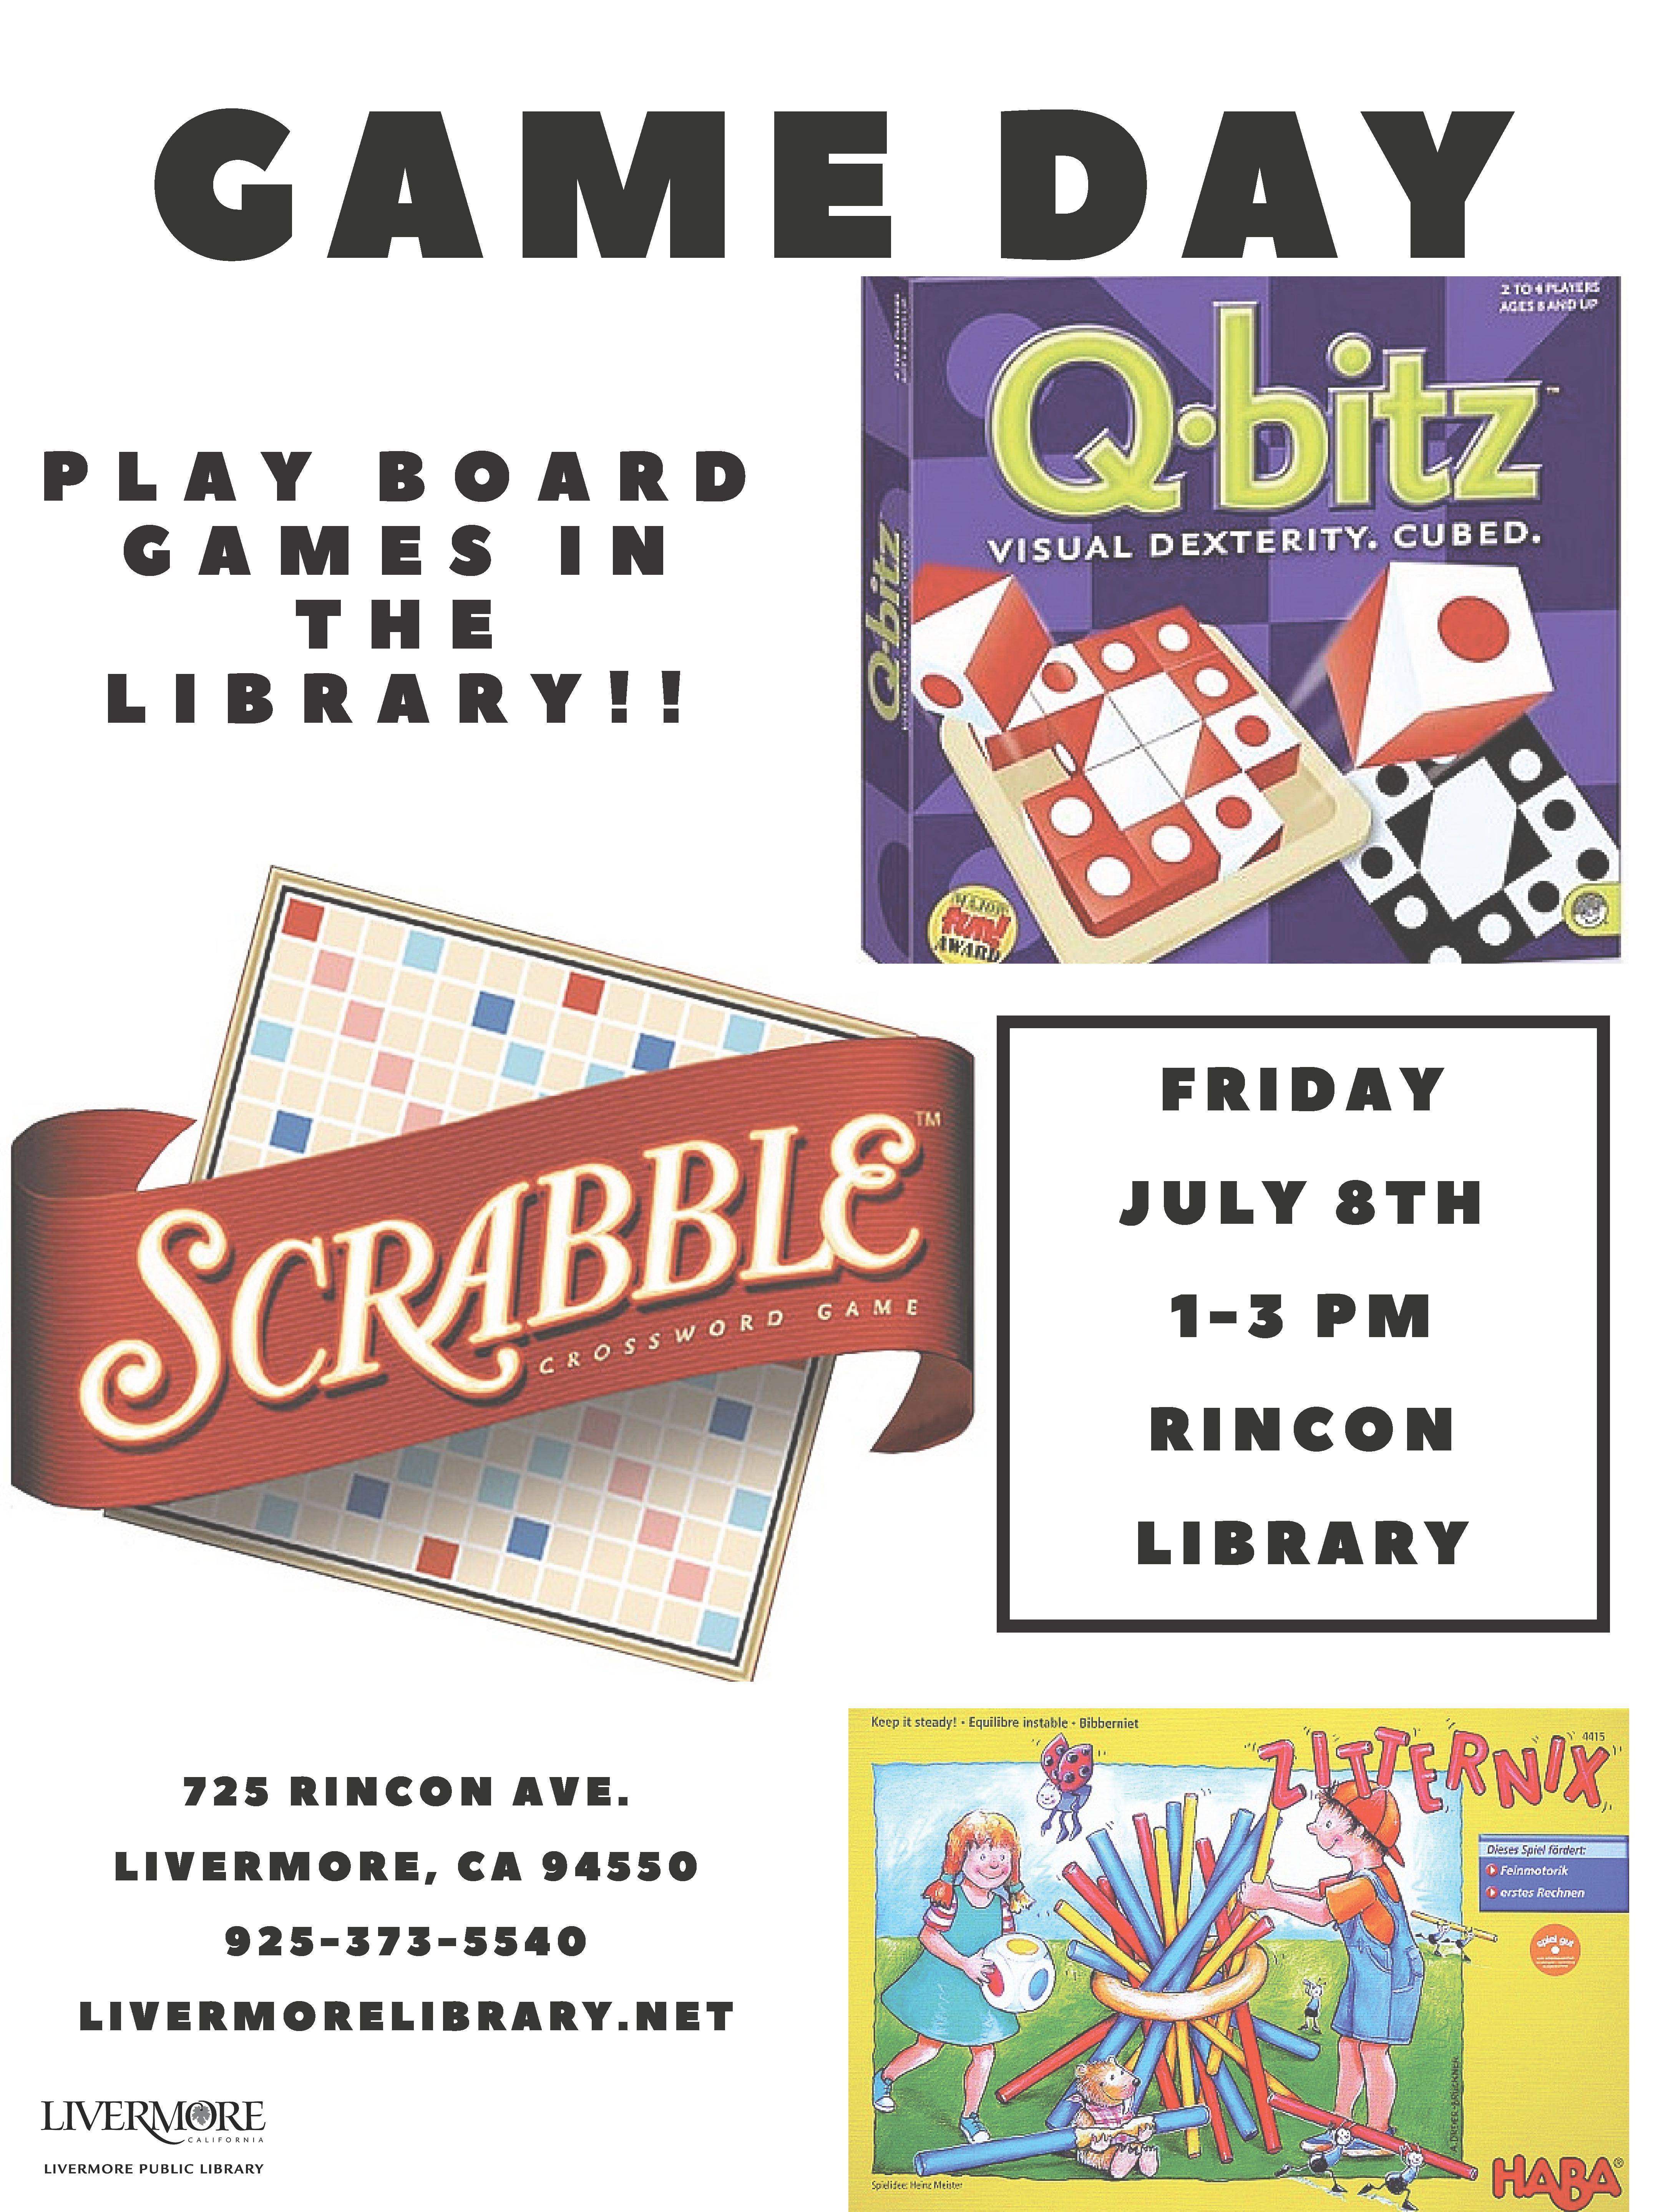 We will be playing board games at Rincon Library July 8